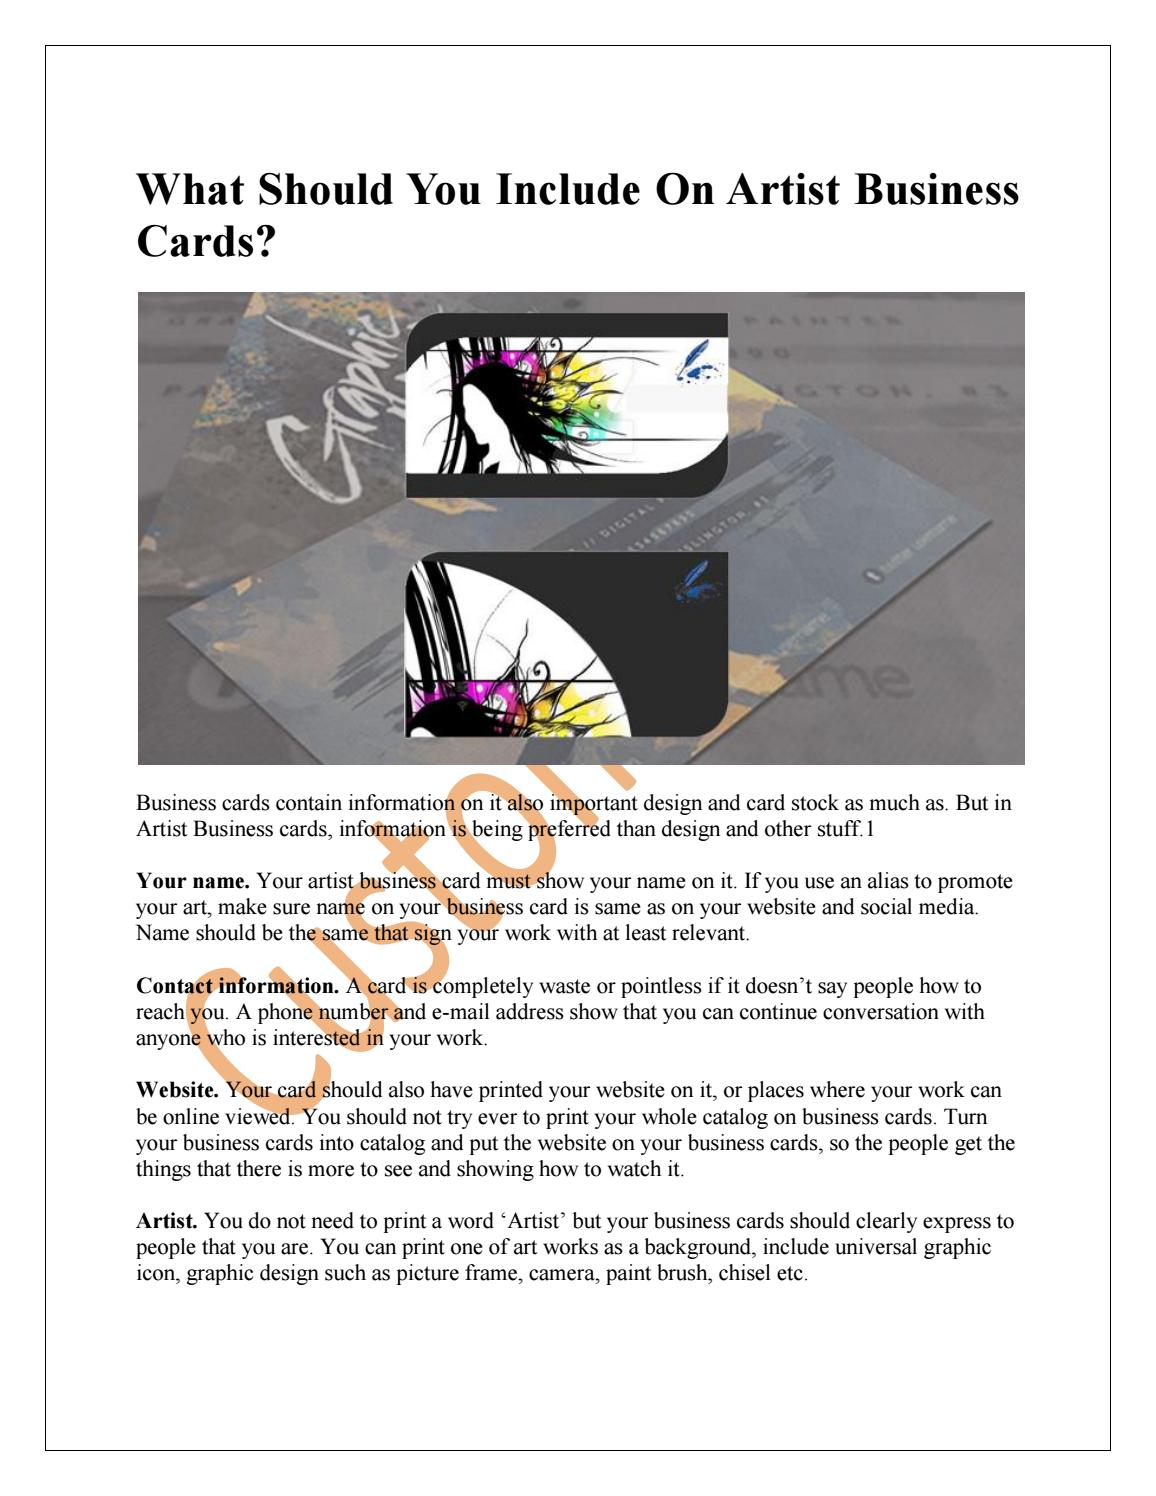 What should you include on artist business cards by shern nguyen issuu colourmoves